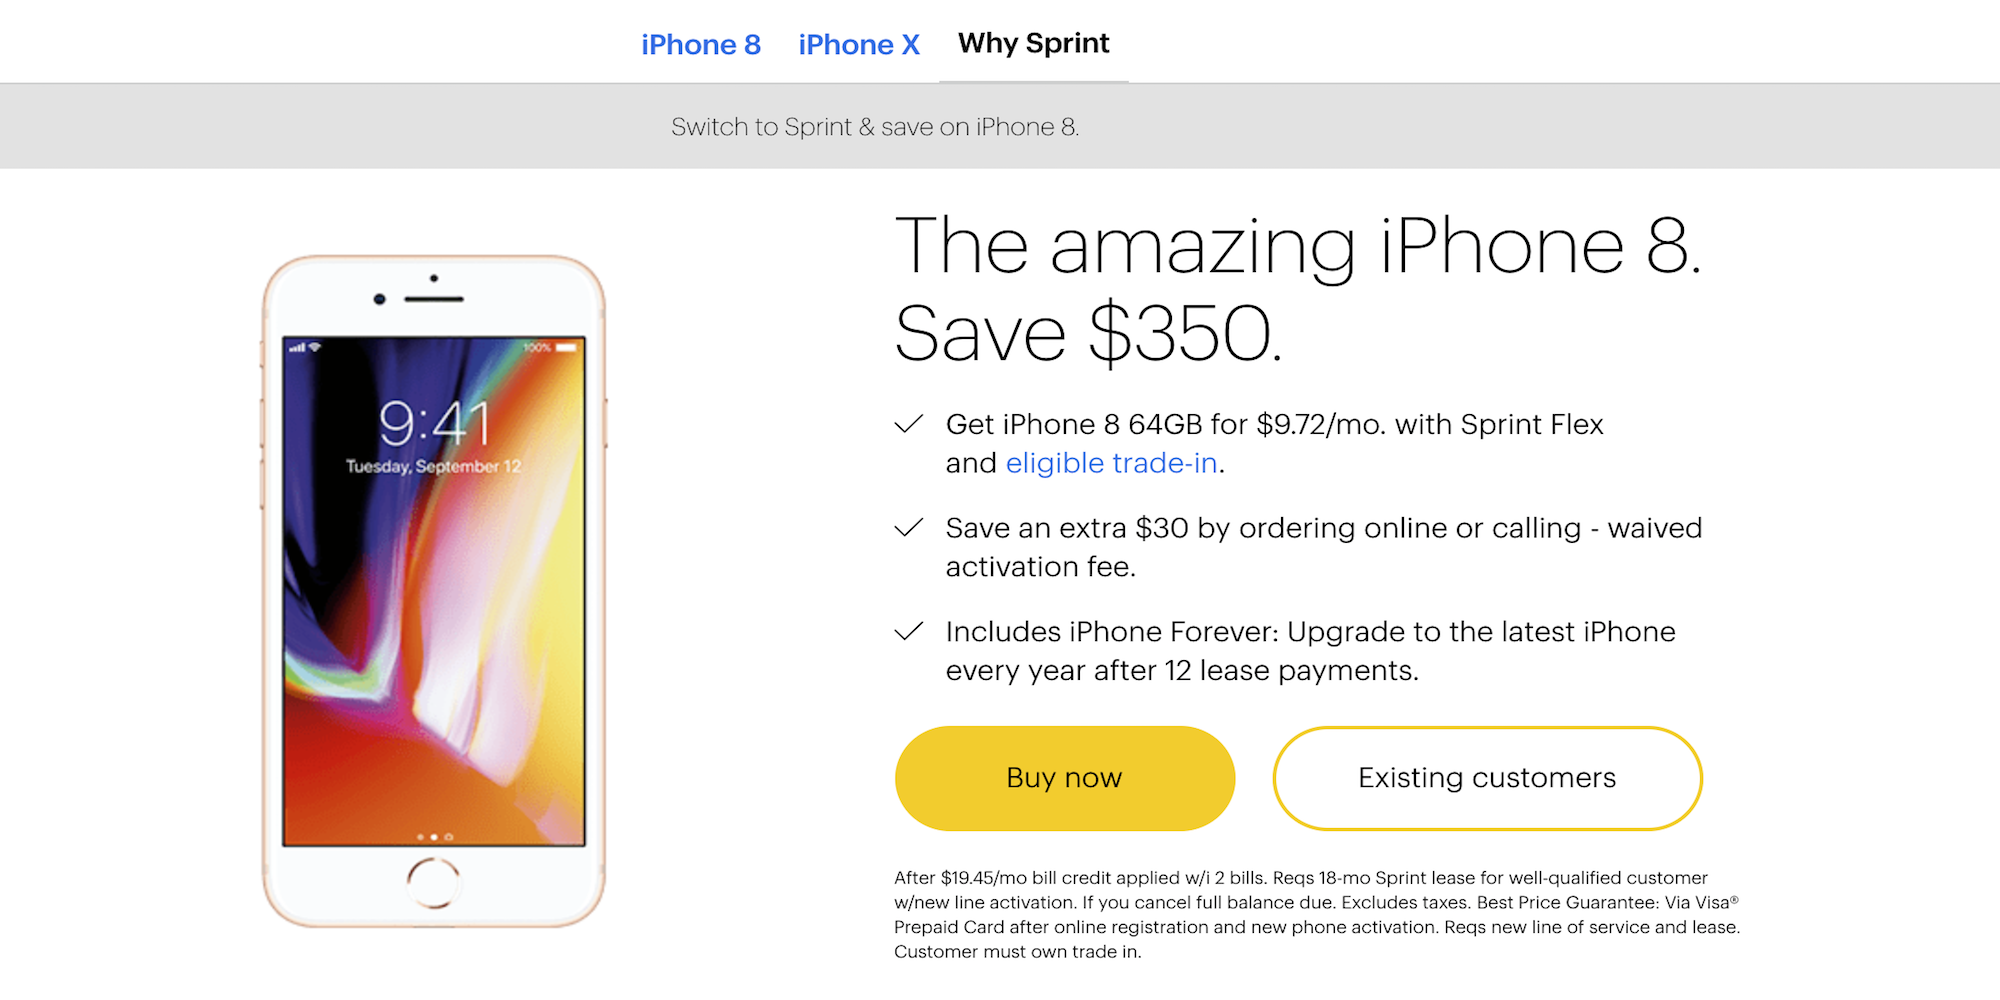 sprint upgrade deals for existing customers